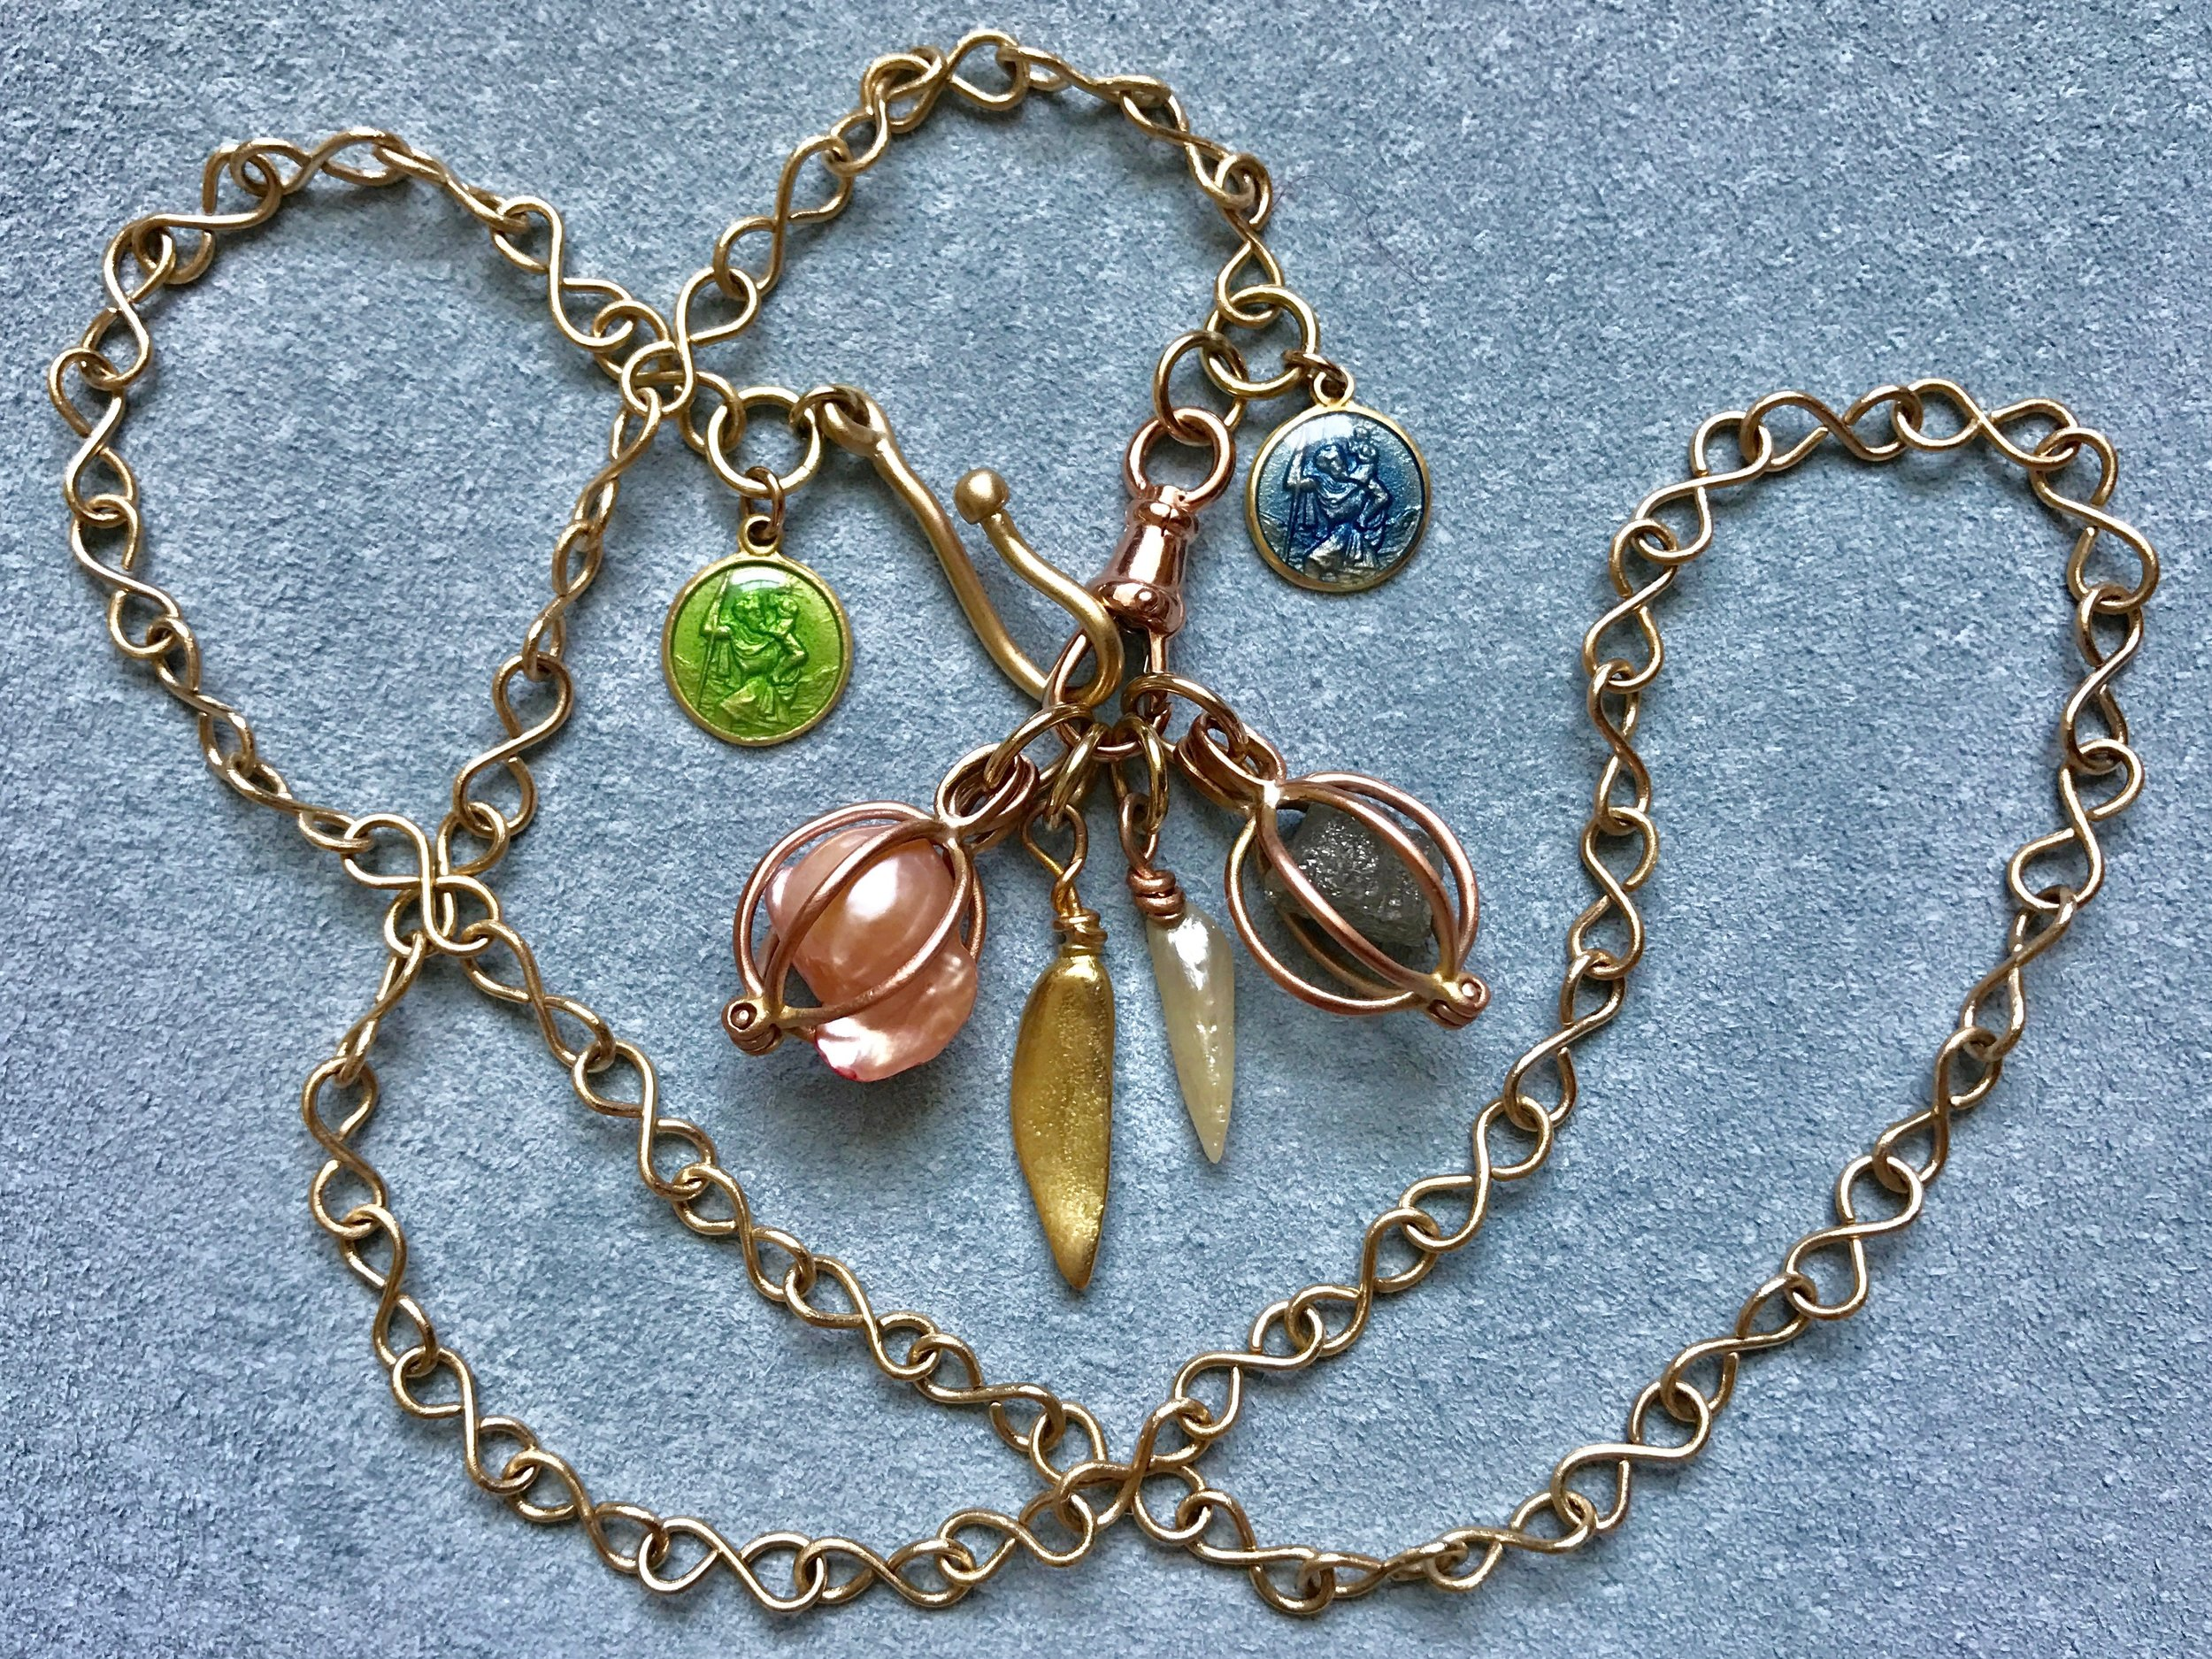 INFINITY CHAIN NECKLACE WITH PEARL BASKET, MISSISSIPPI CAST PENDANT, PEARL, DIAMOND BASKET AND ENAMEL ST. CHRISTOPHER'S